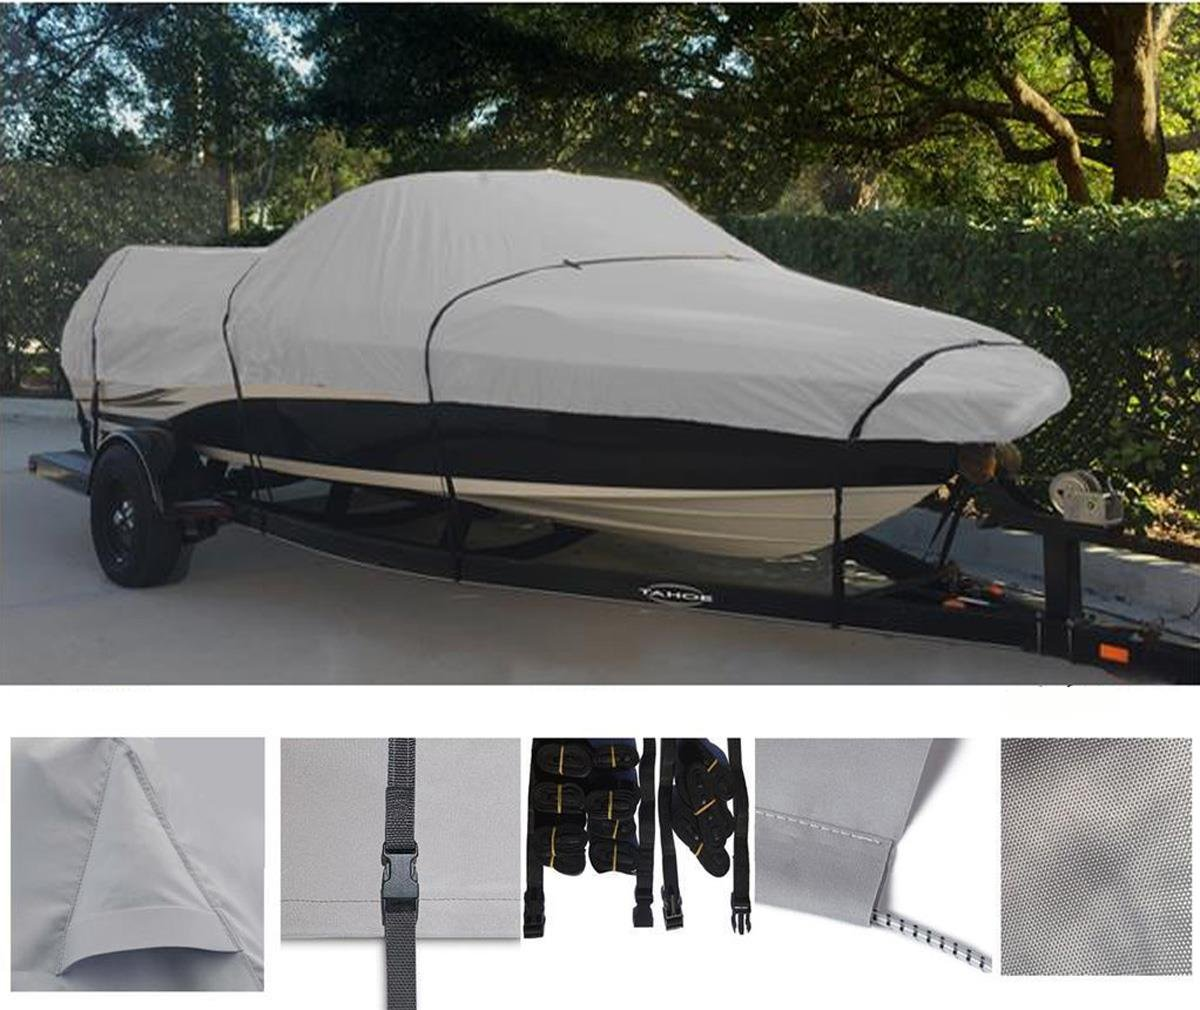 GREY, STORAGE, TRAVEL, MOORING BOAT COVER FOR FOUR WINNS FREEDOM 180 I/O 1992-1993 by SBU